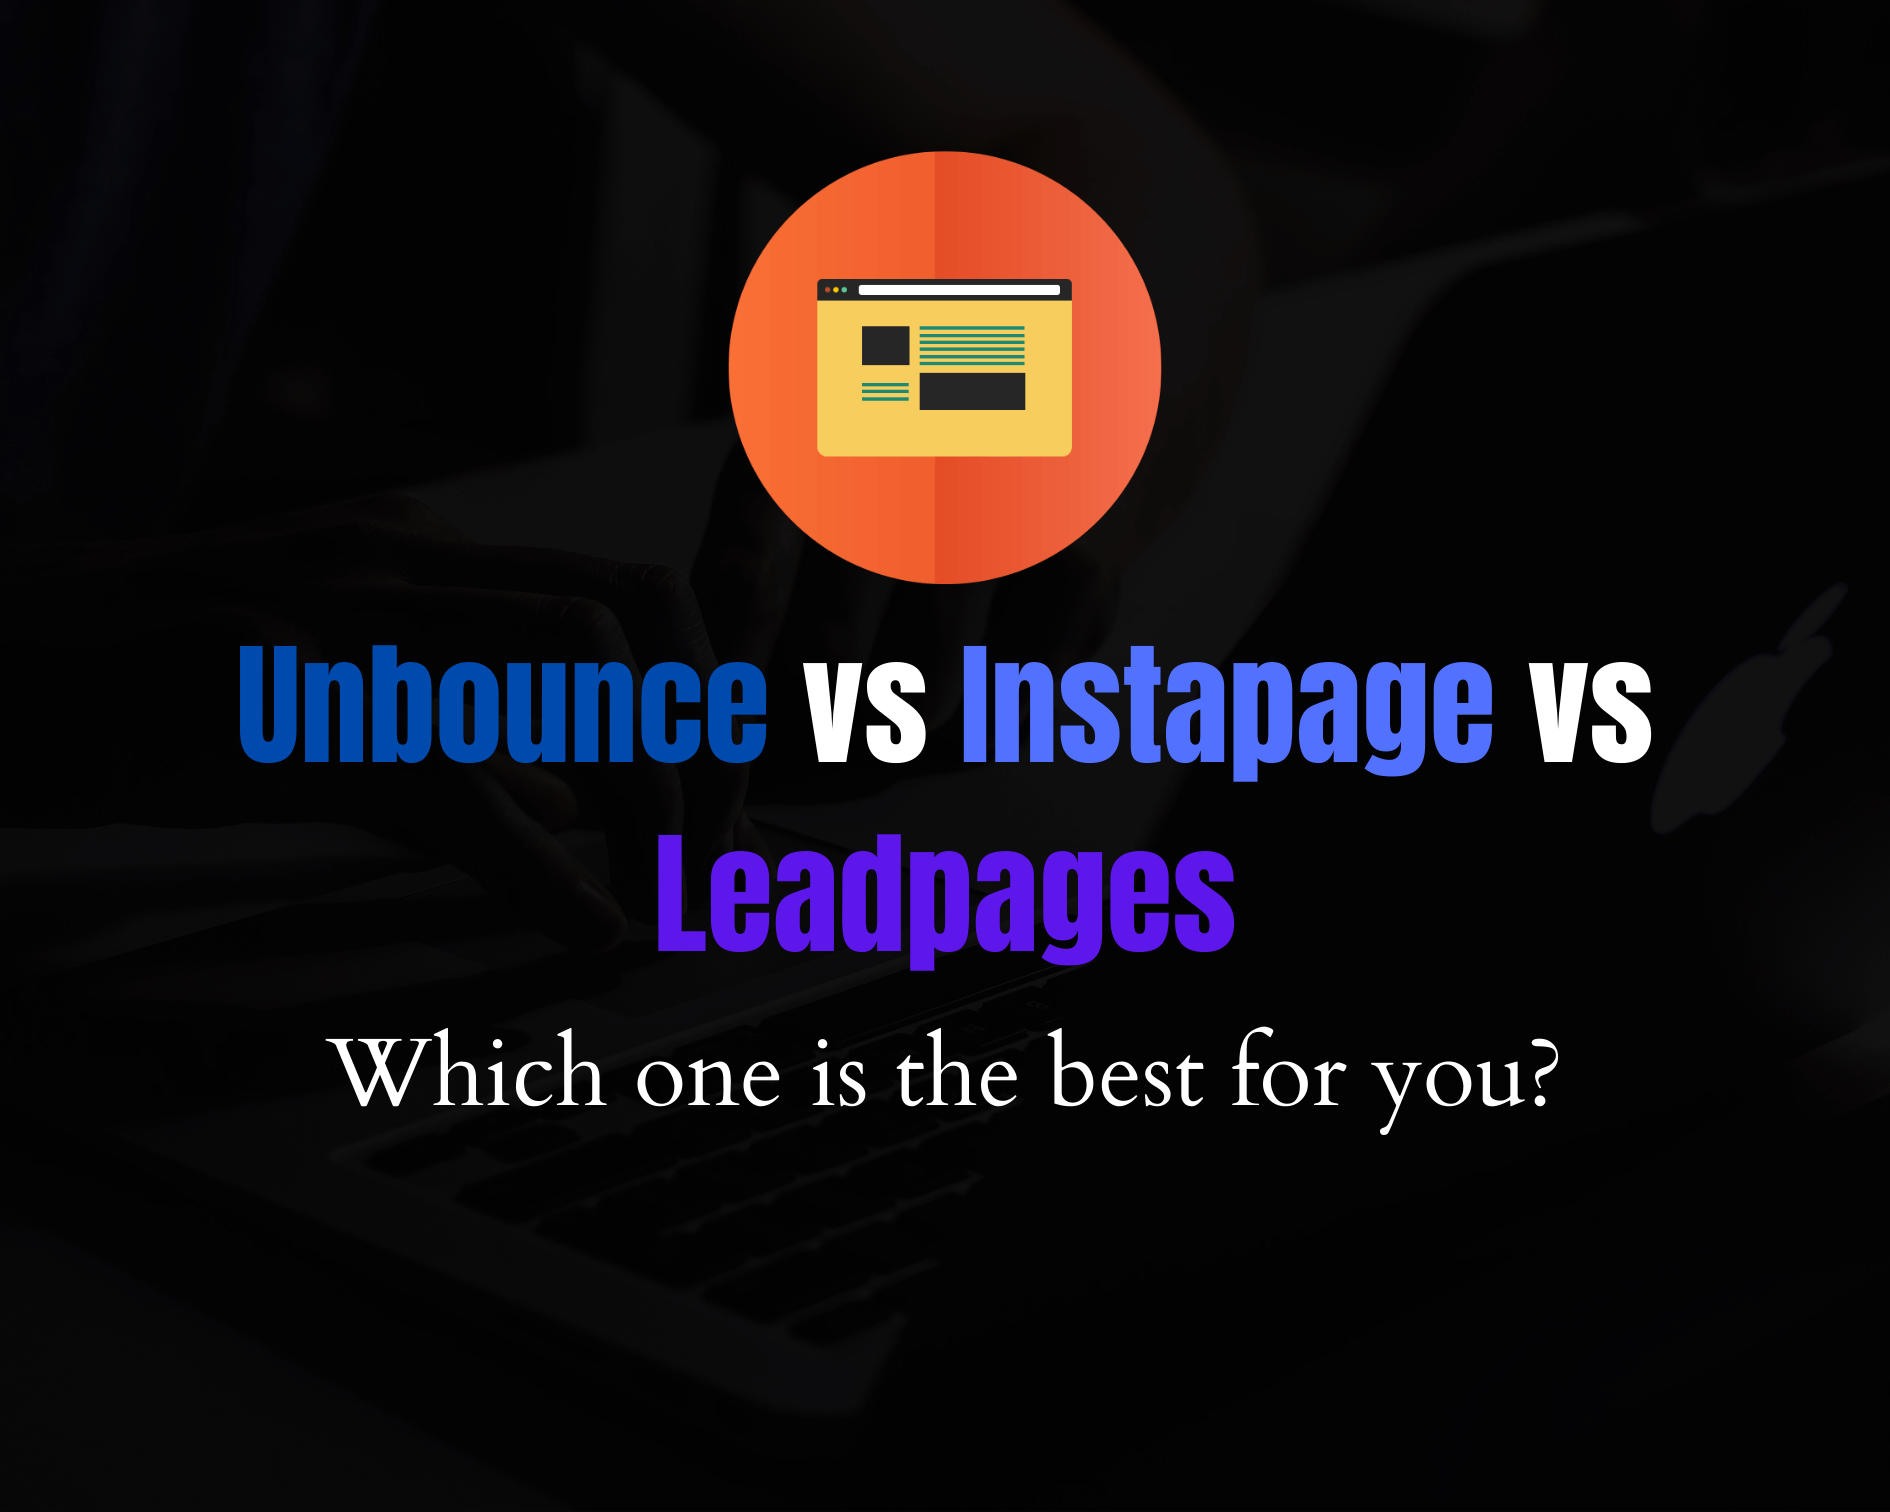 Unbounce vs Instapage vs LeadPages: Which one is the best in 2020?